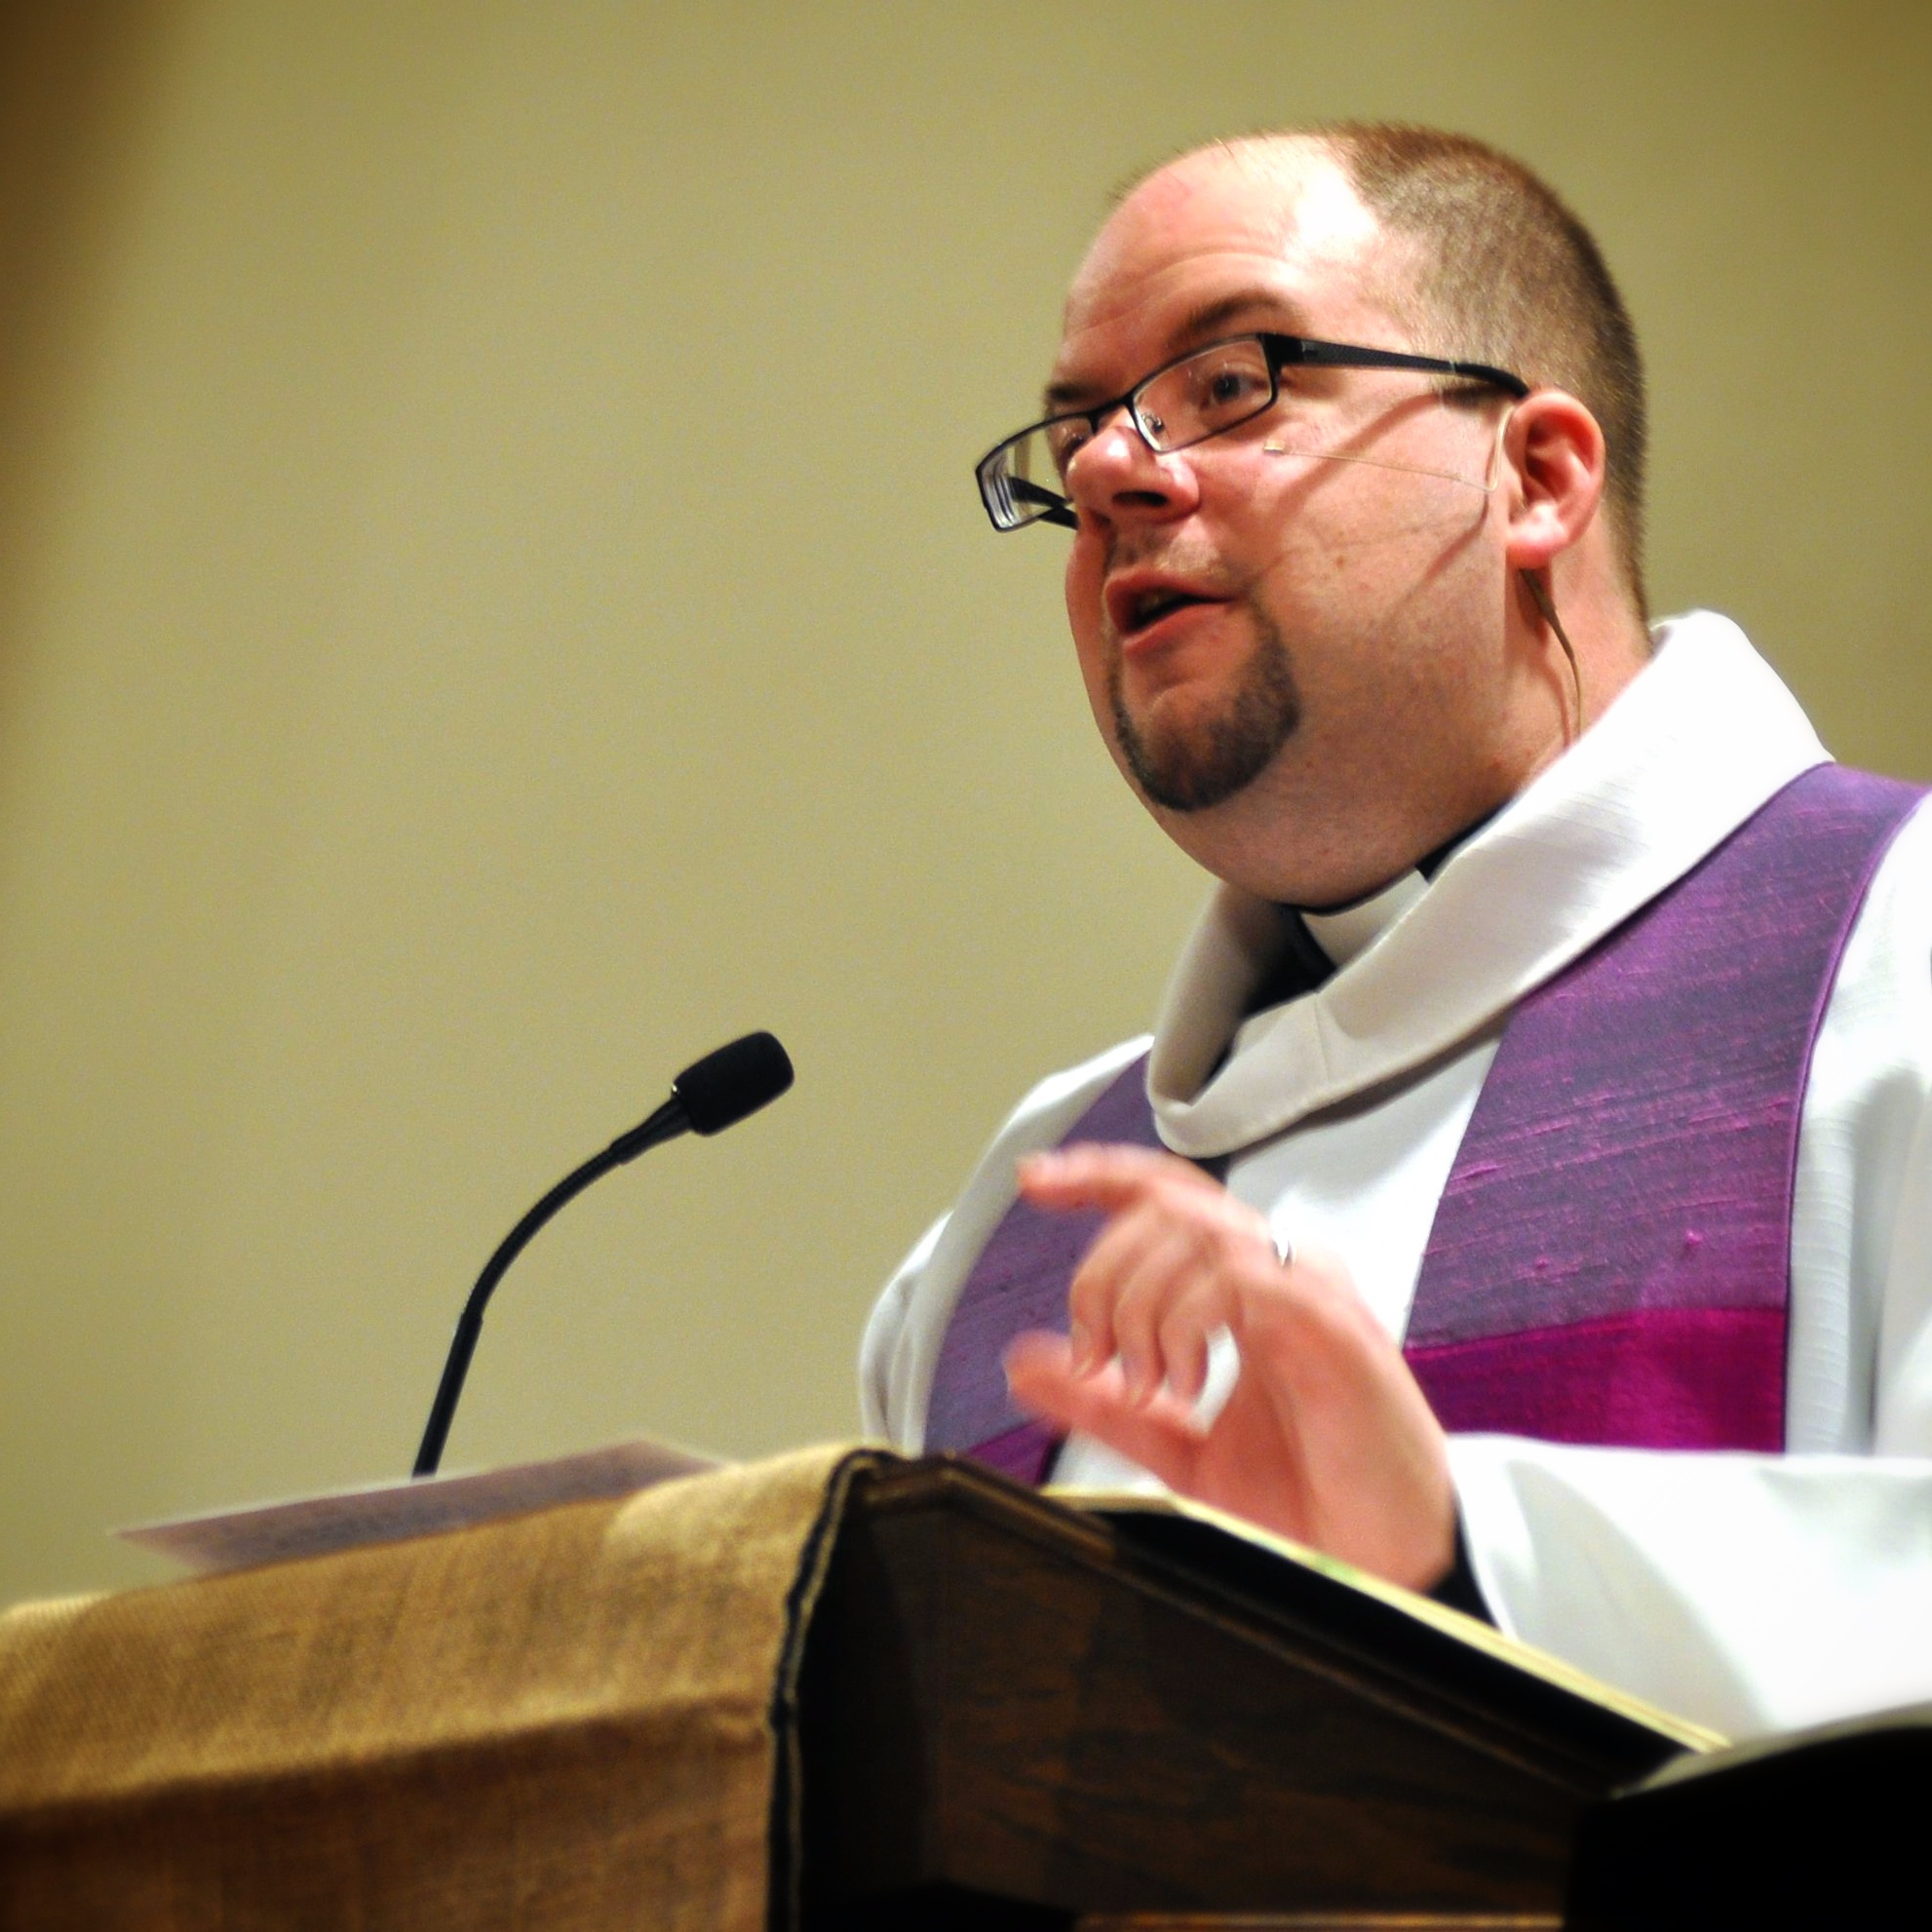 Rev. Josh Hale is the current pastor of First United Methodist Church.